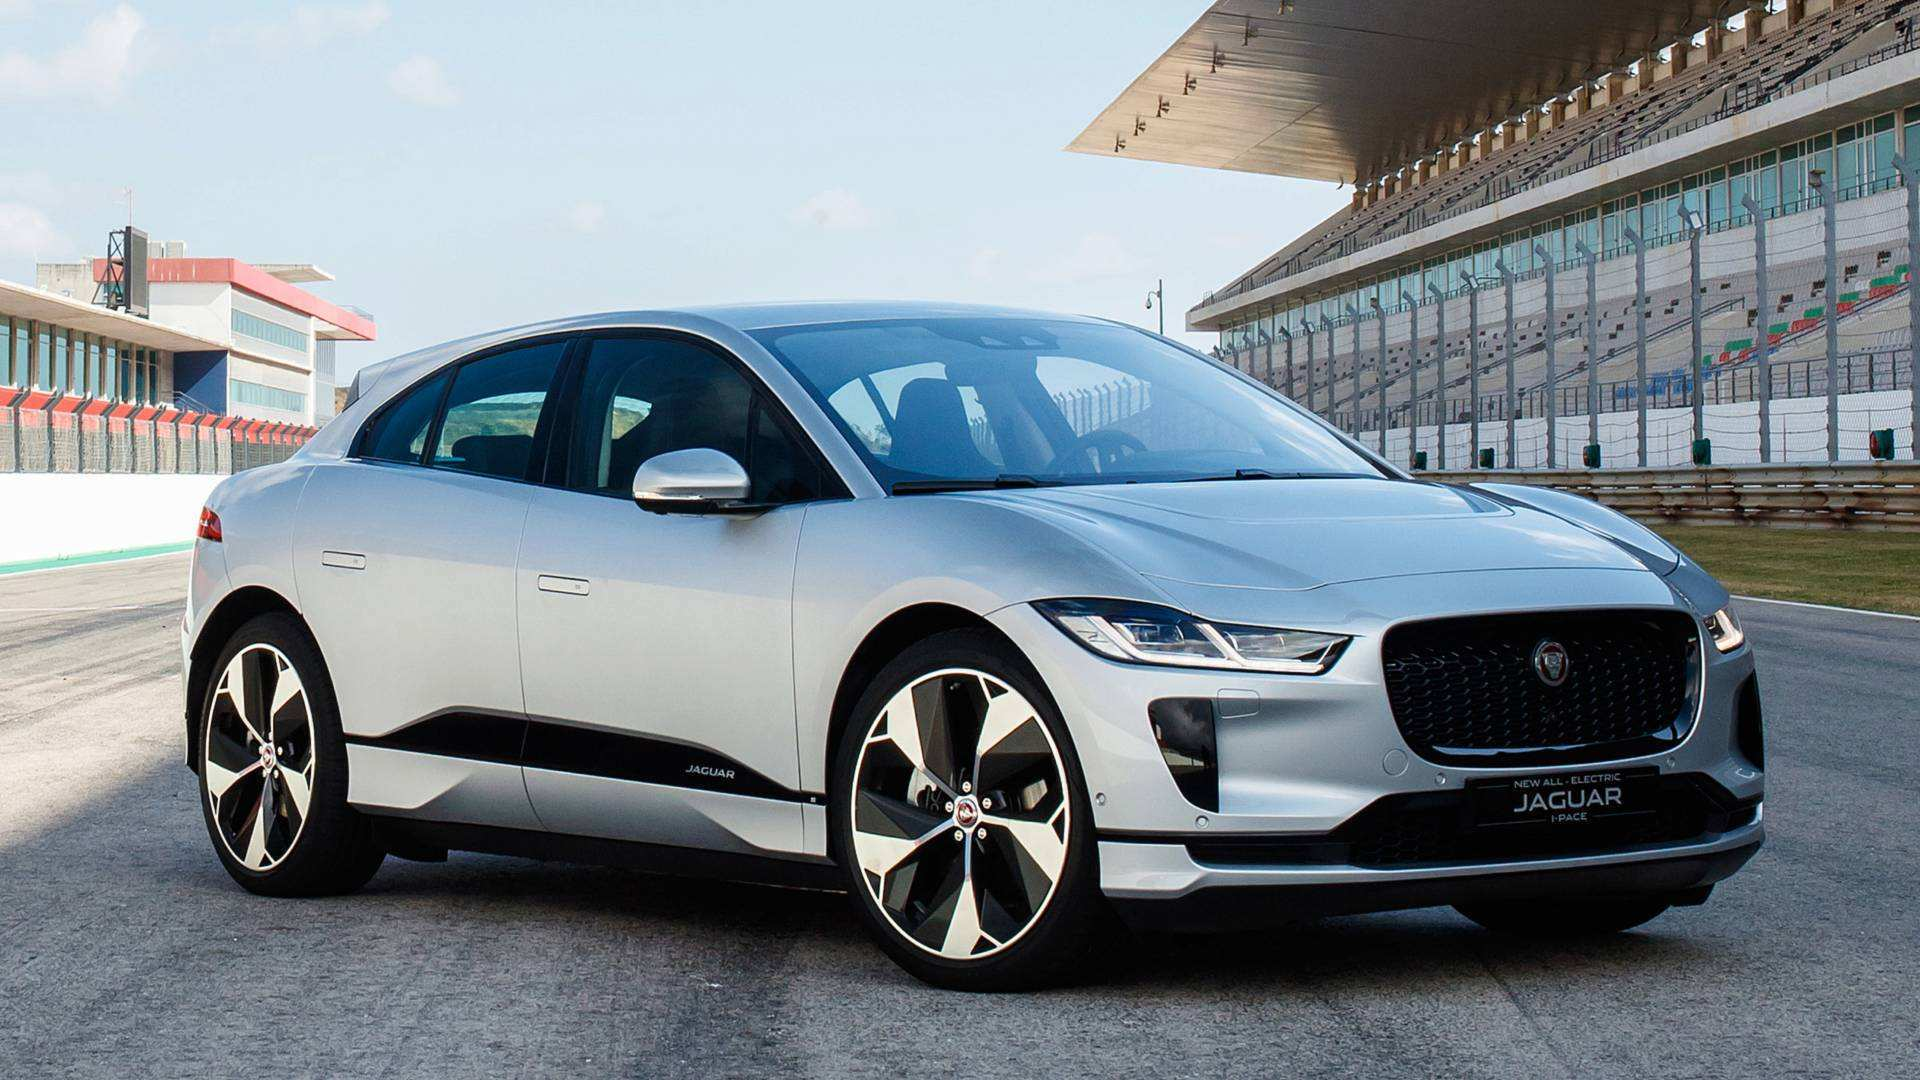 84 Concept of 2019 Jaguar I Pace Wallpaper for 2019 Jaguar I Pace